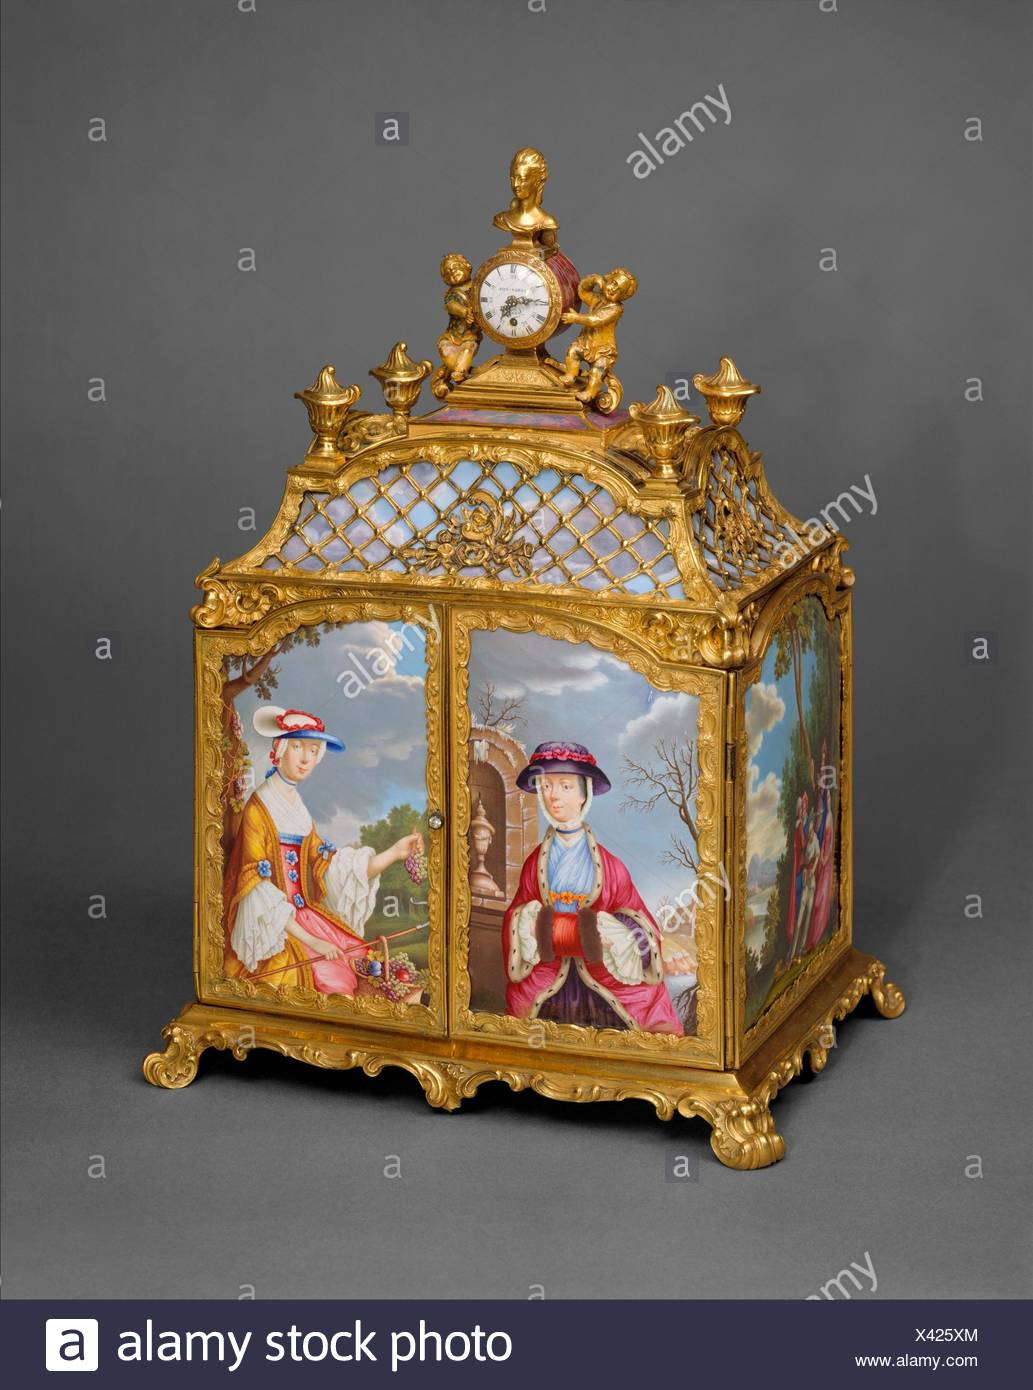 Jewel cabinet with watch. Purveyor: James Cox (British, ca. 1723-1800); Artist: After a design by Antoine Watteau (French, Valenciennes 1684-1721 - Stock Image